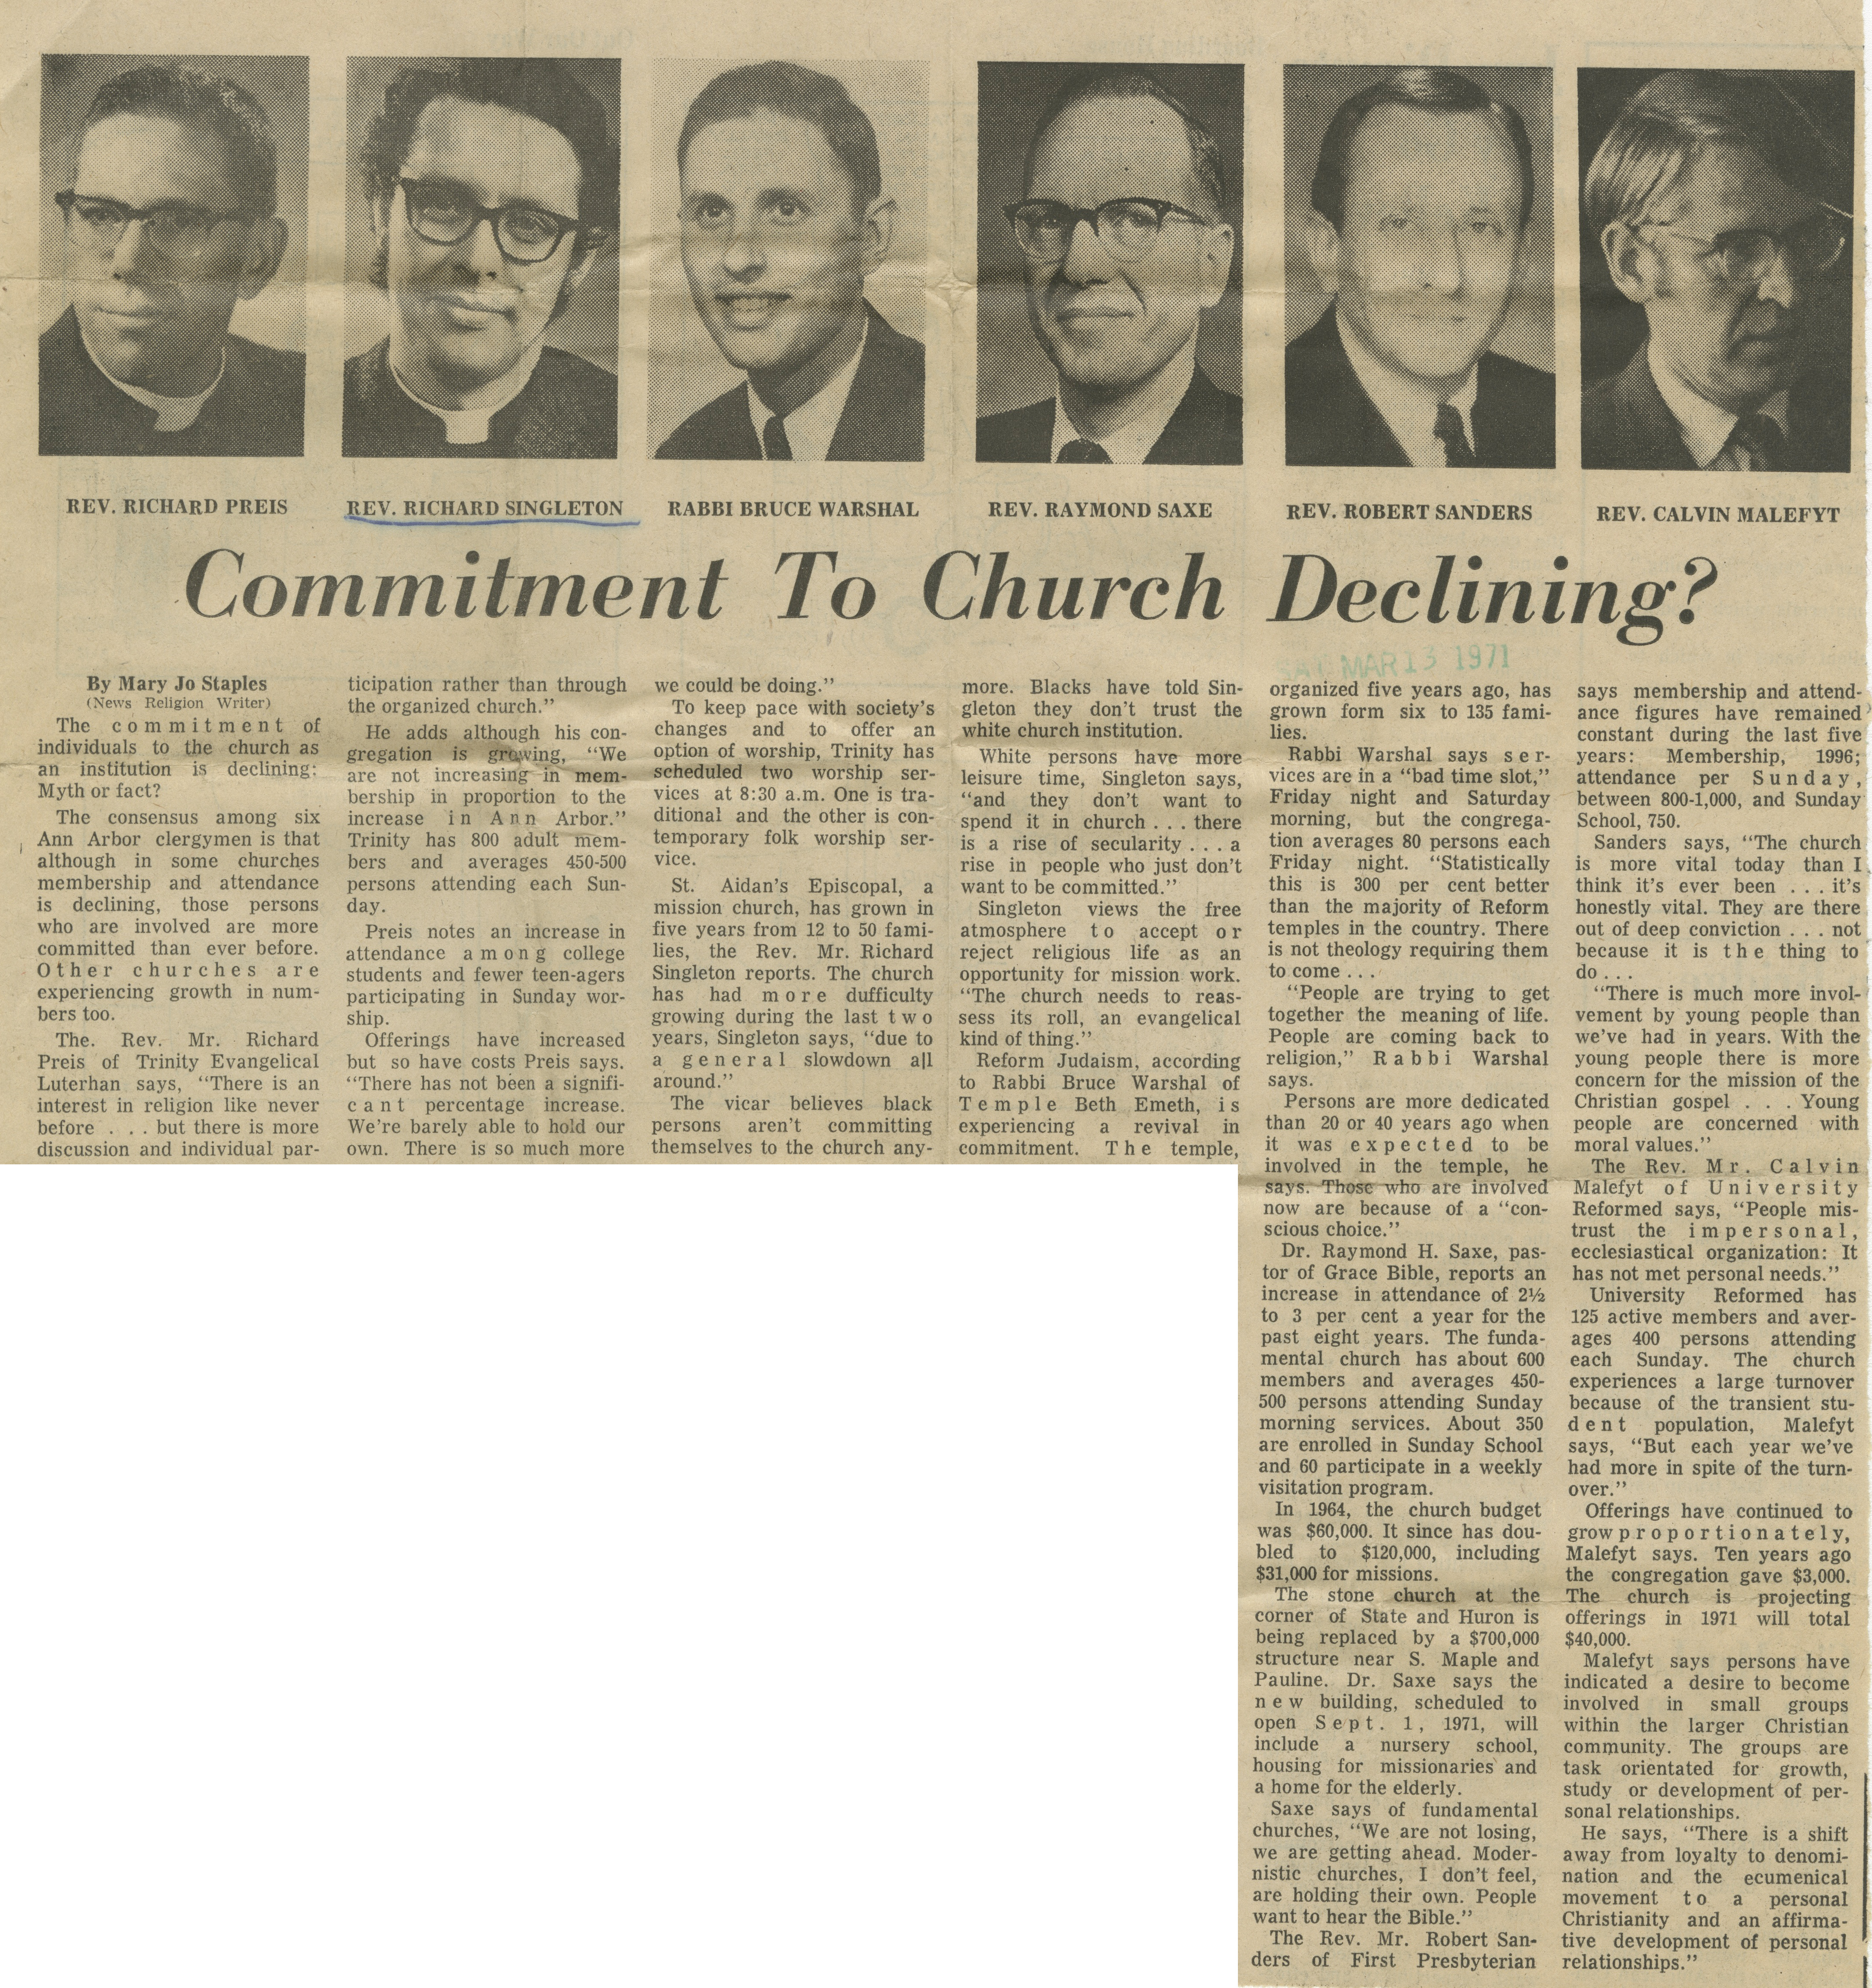 Commitment To Church Declining? image